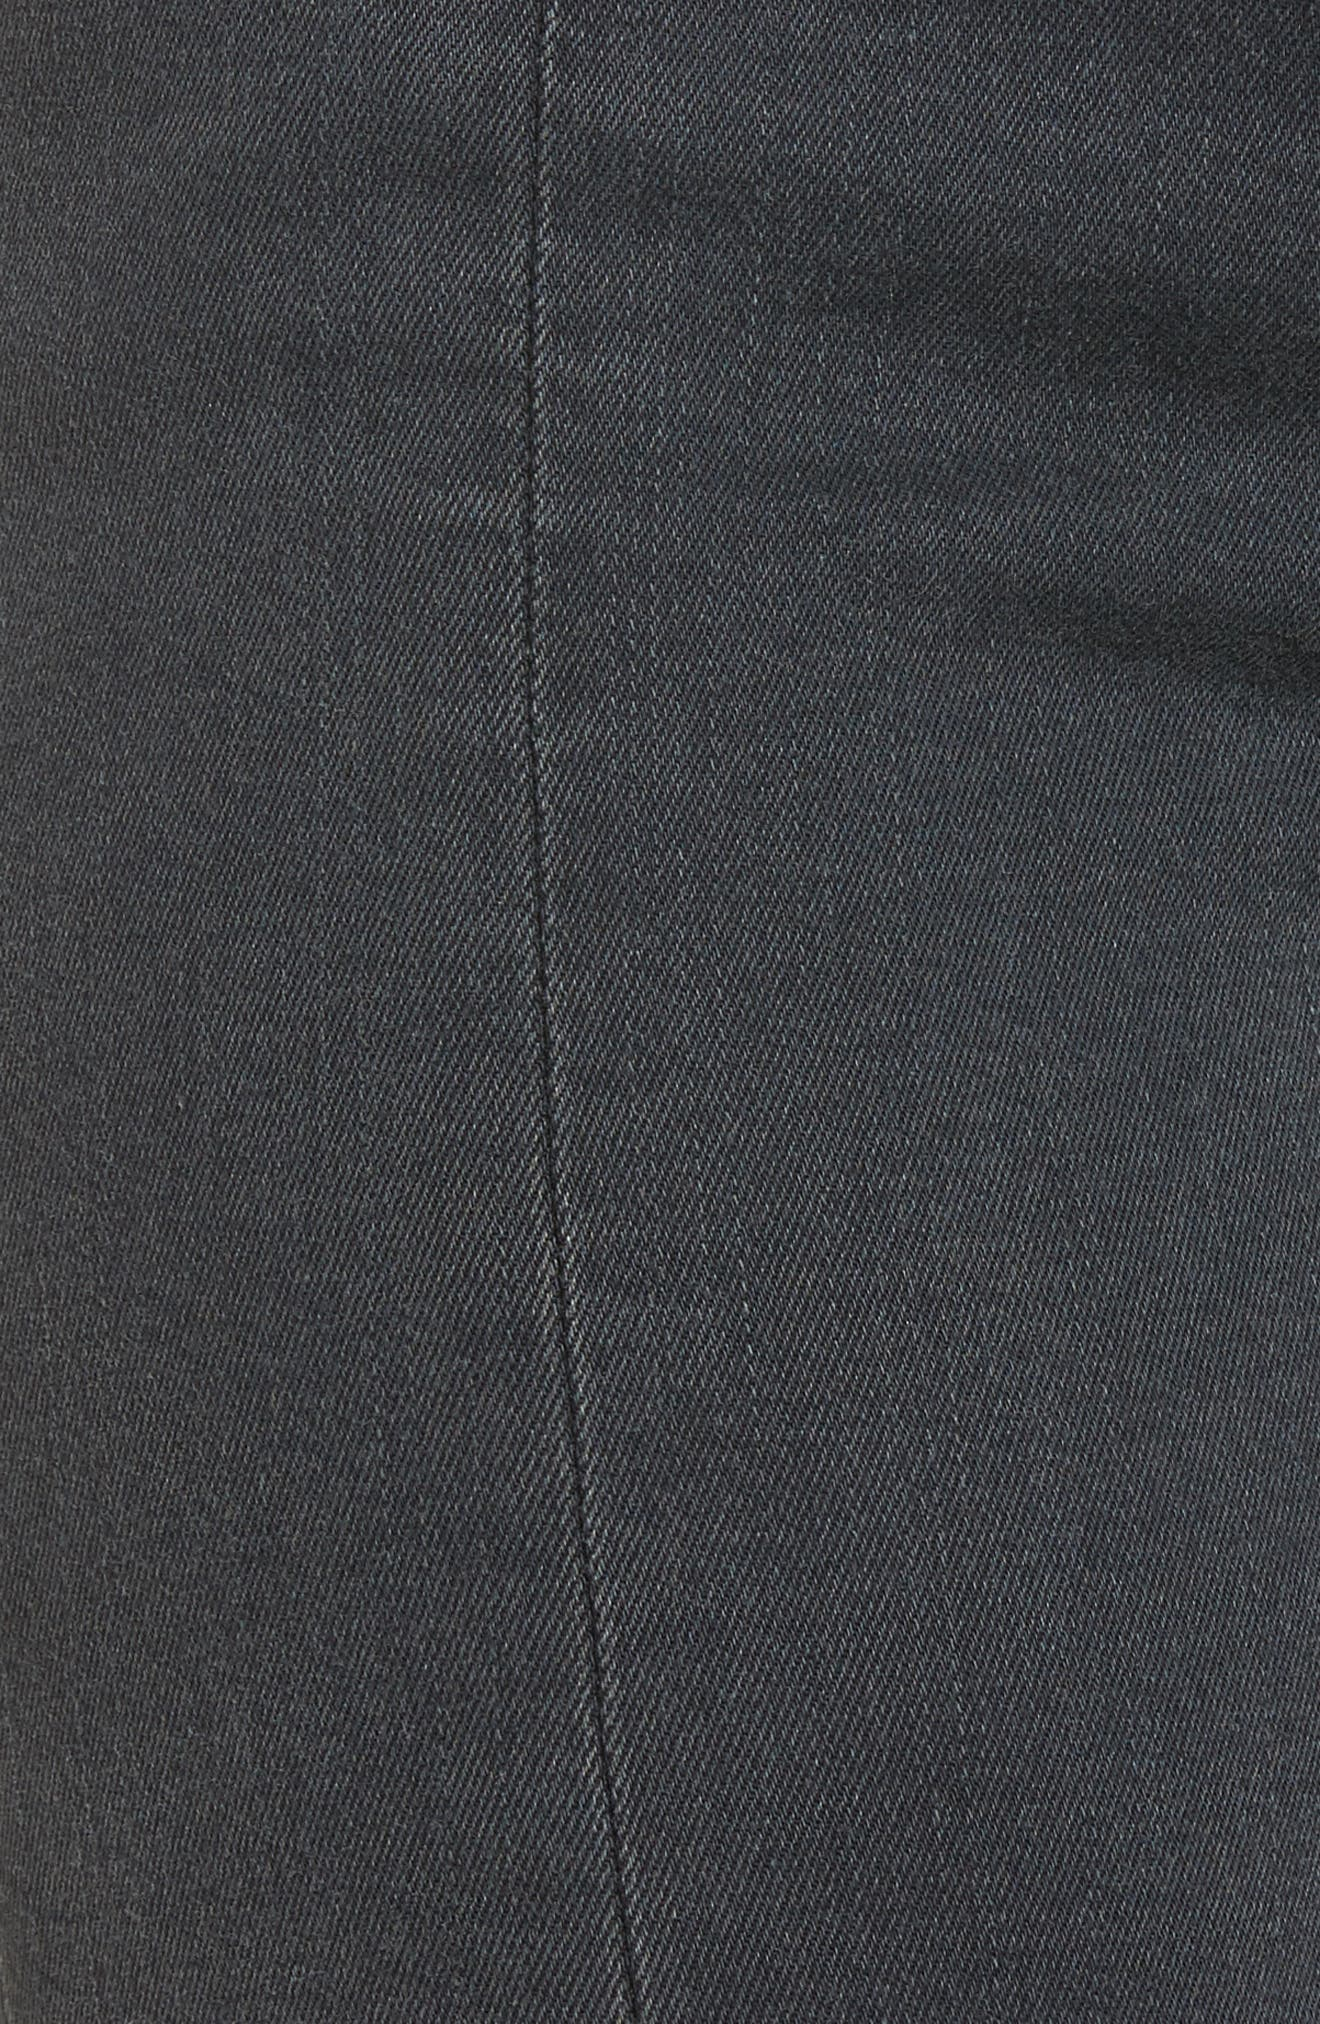 Jagger Front Seam Skinny Jeans,                             Alternate thumbnail 5, color,                             Washed Black